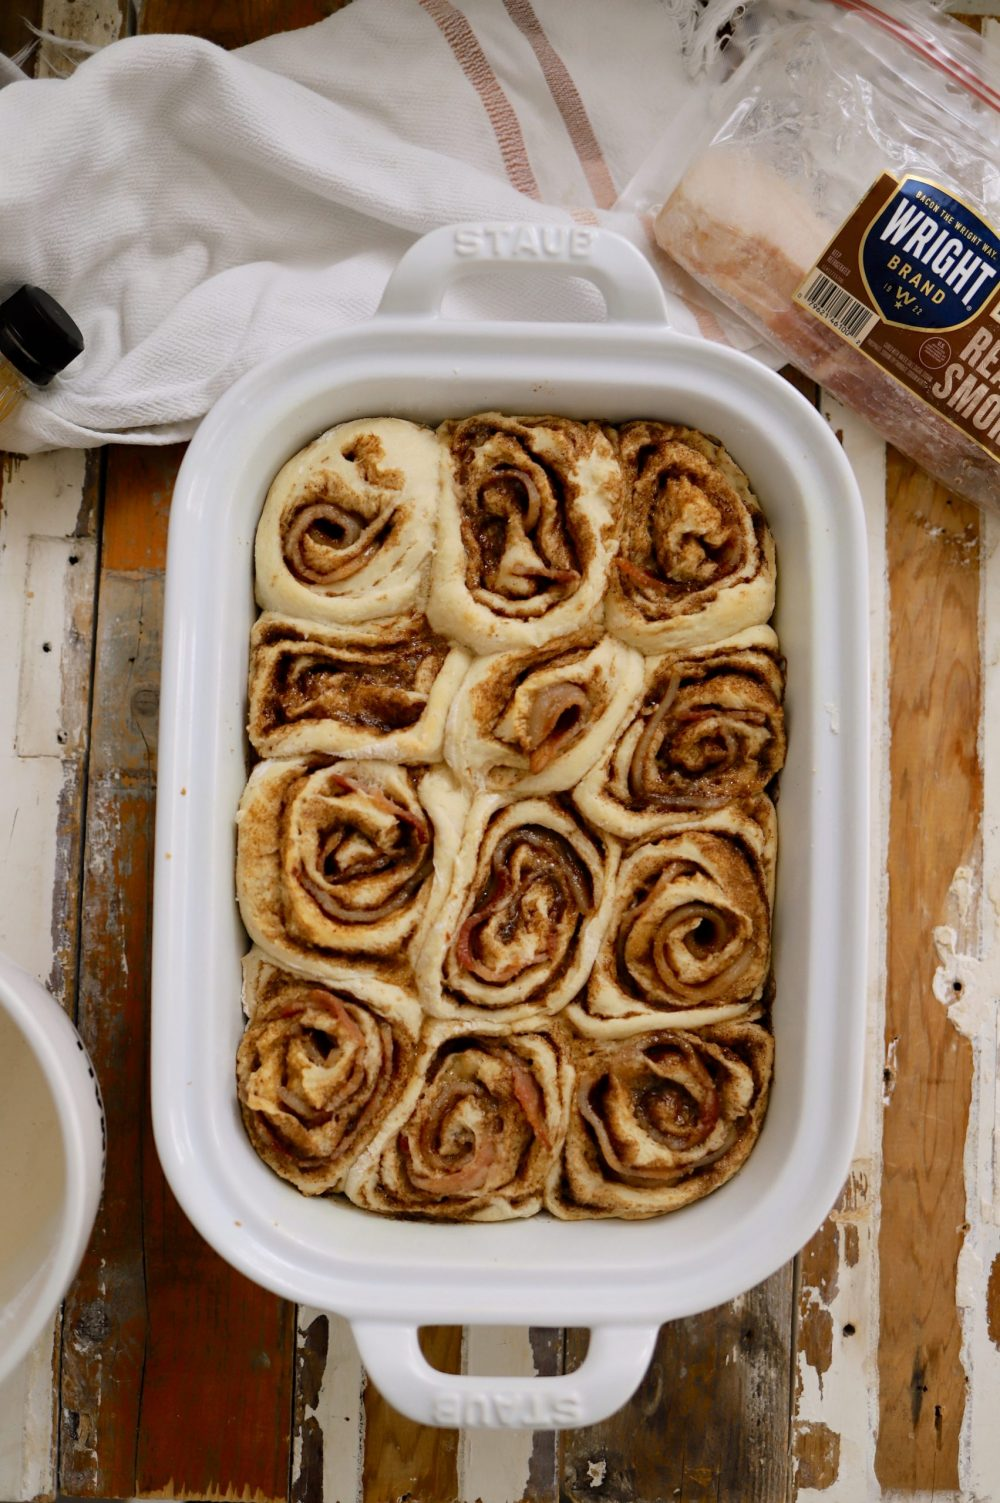 Deliciously Salty Sweet Bacon Cinnamon Rolls with Bourbon Glaze from food and lifestyle blogger Tabitha Blue of Fresh Mommy Blog | Bacon Cinnamon Rolls by popular Florida lifestyle blog, Fresh Mommy Blog: image of bacon cinnamon rolls in a white ceramic baking dish.